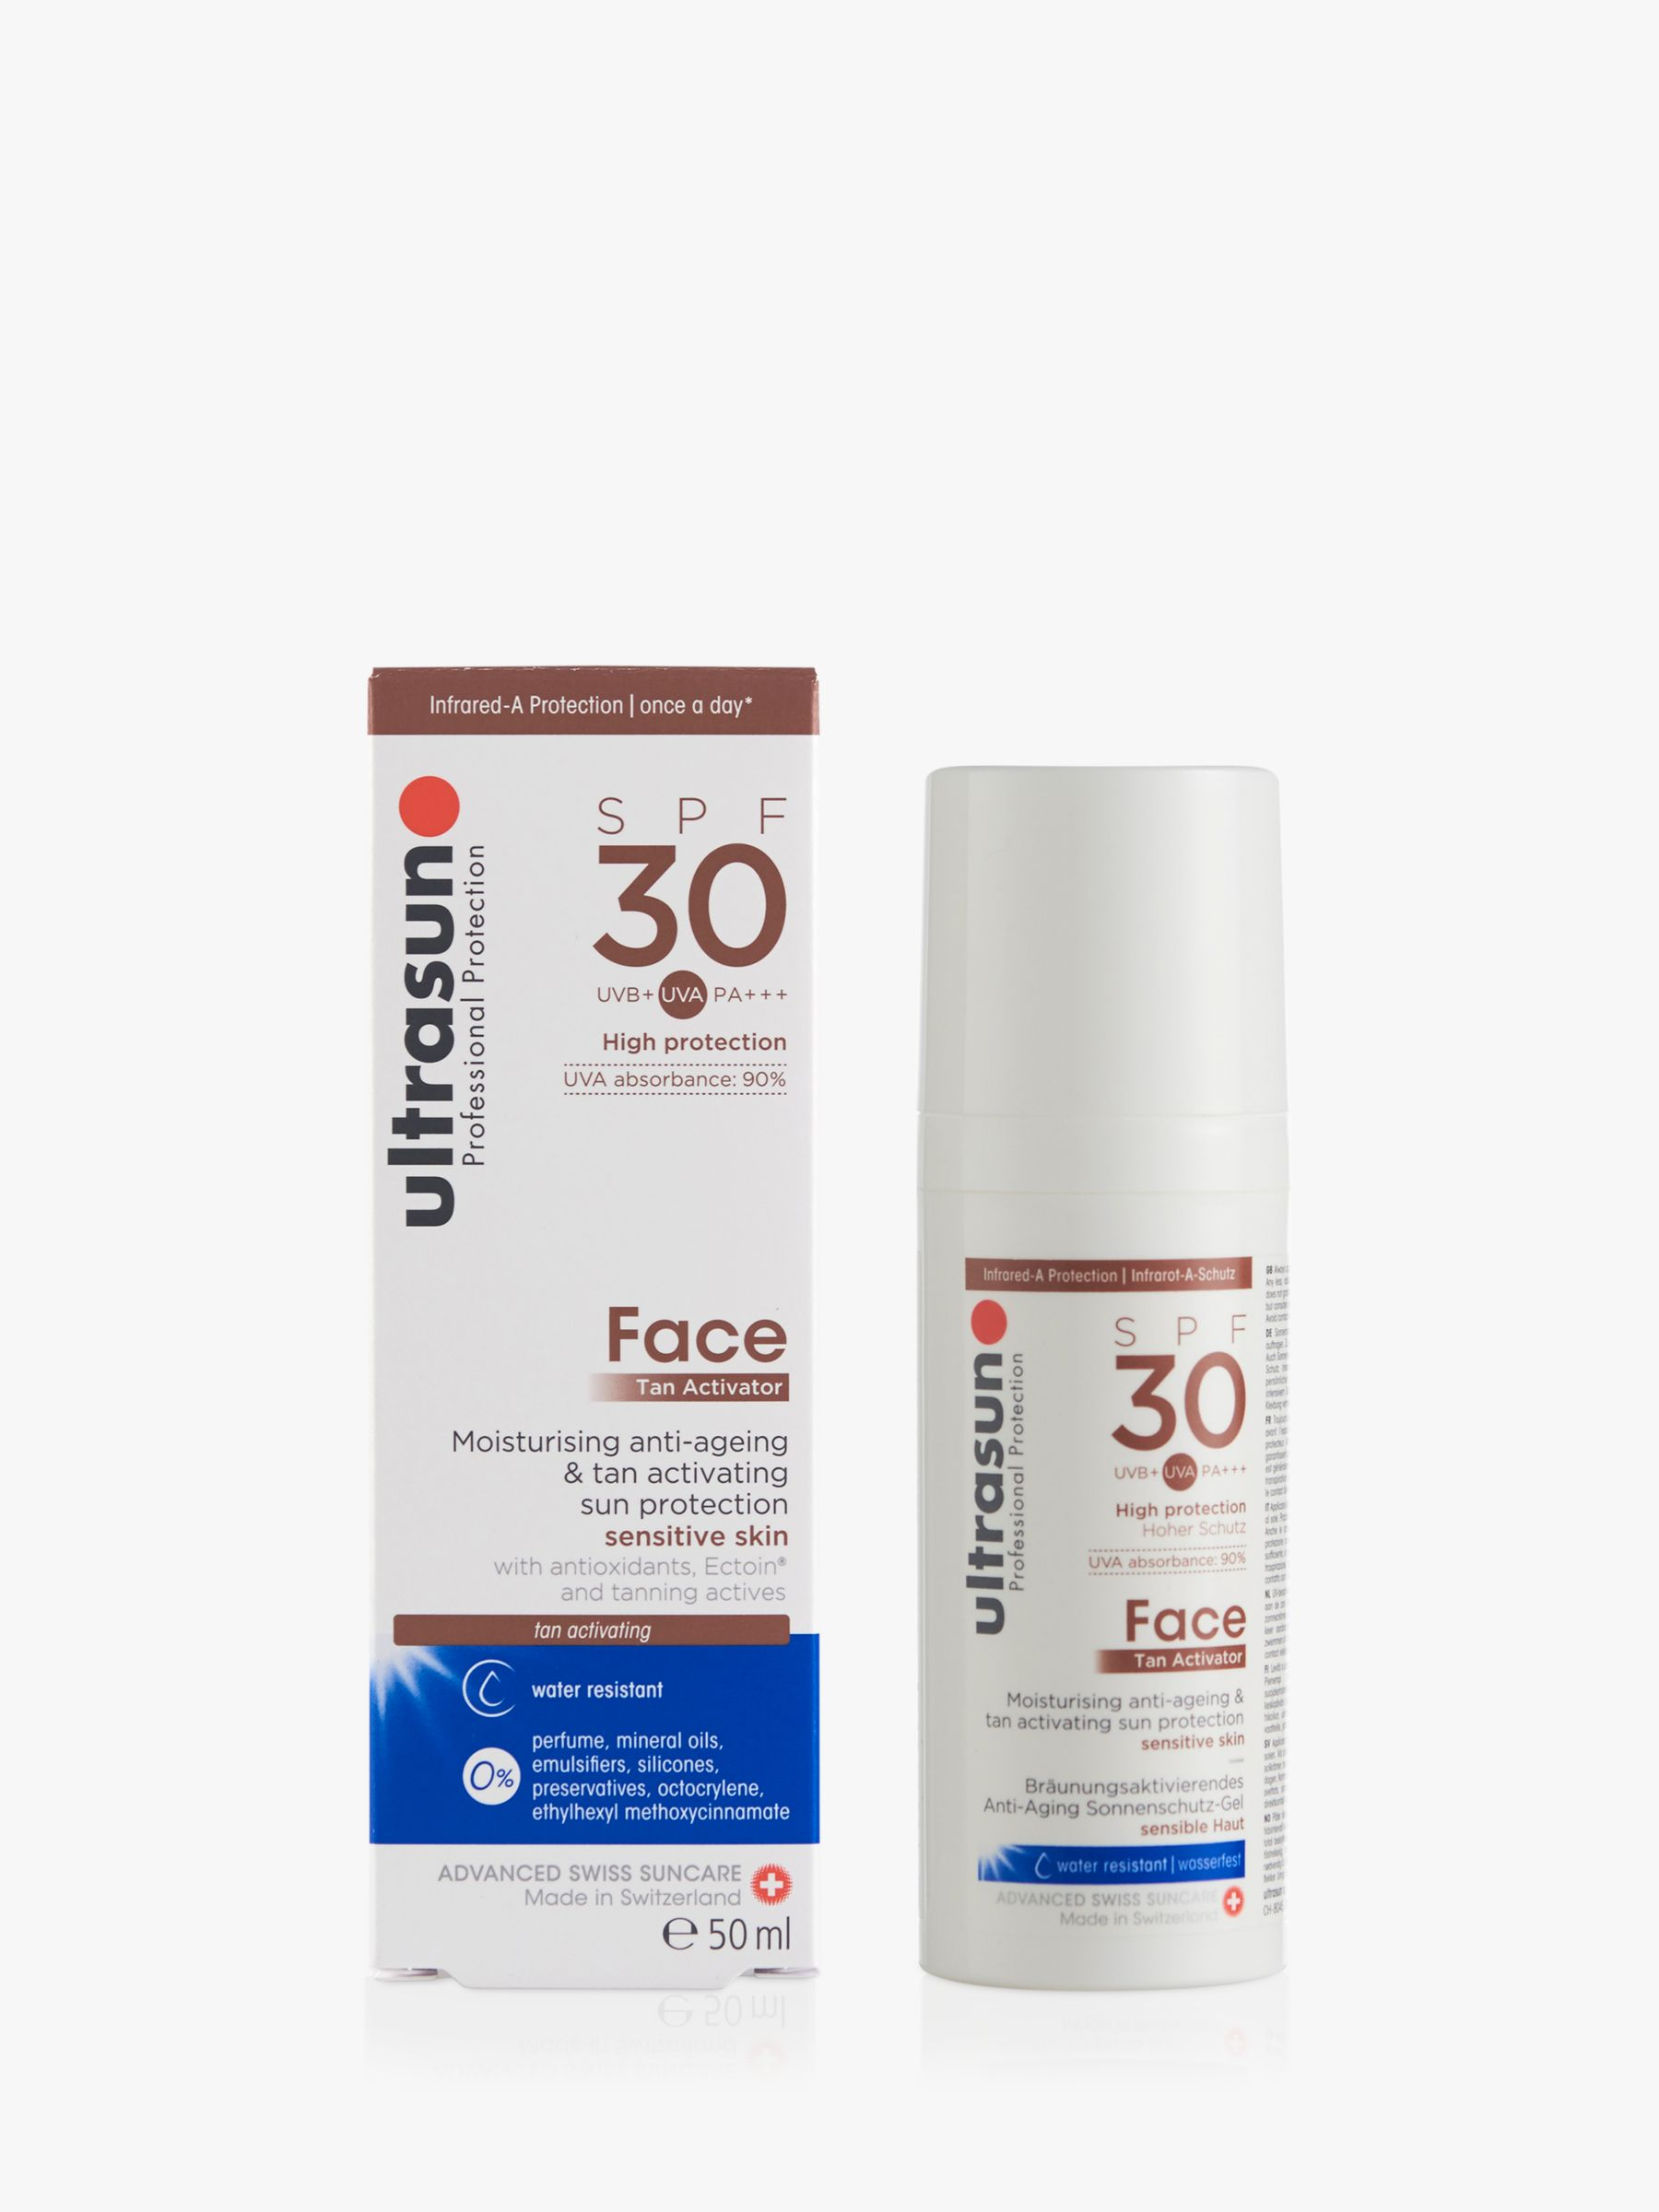 Ultrasun Ultrasun SPF 30 Face Tan Activator, 50ml